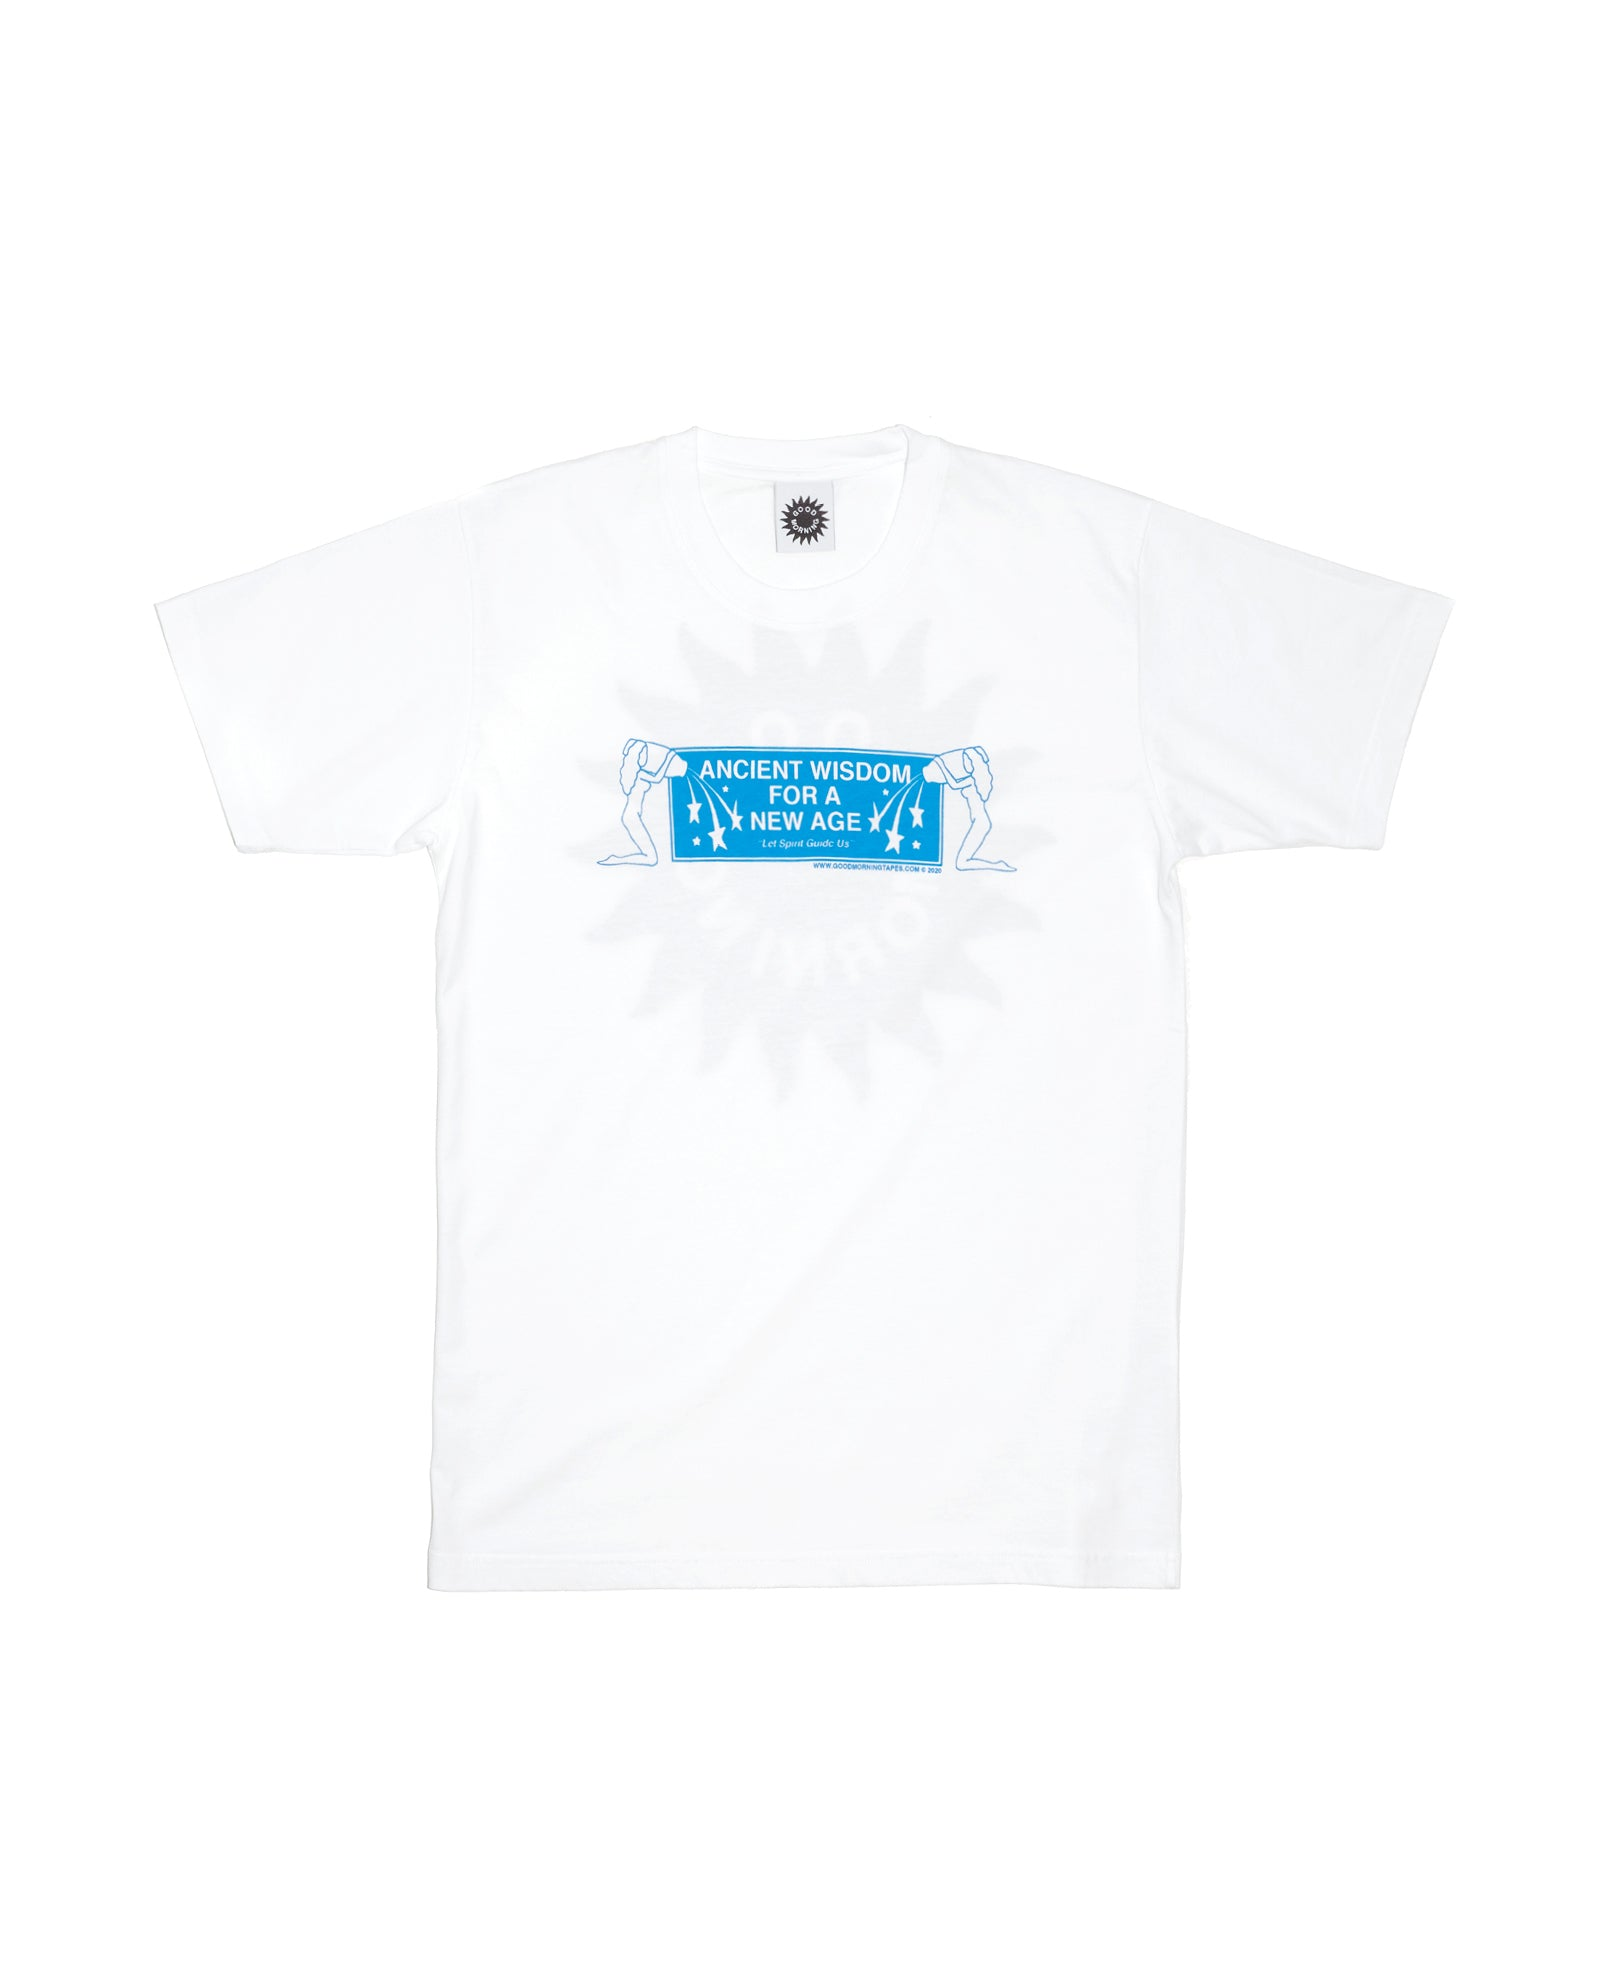 Good Morning Tapes - Good Morning Tapes - Ancient Wisdom T-Shirt - White